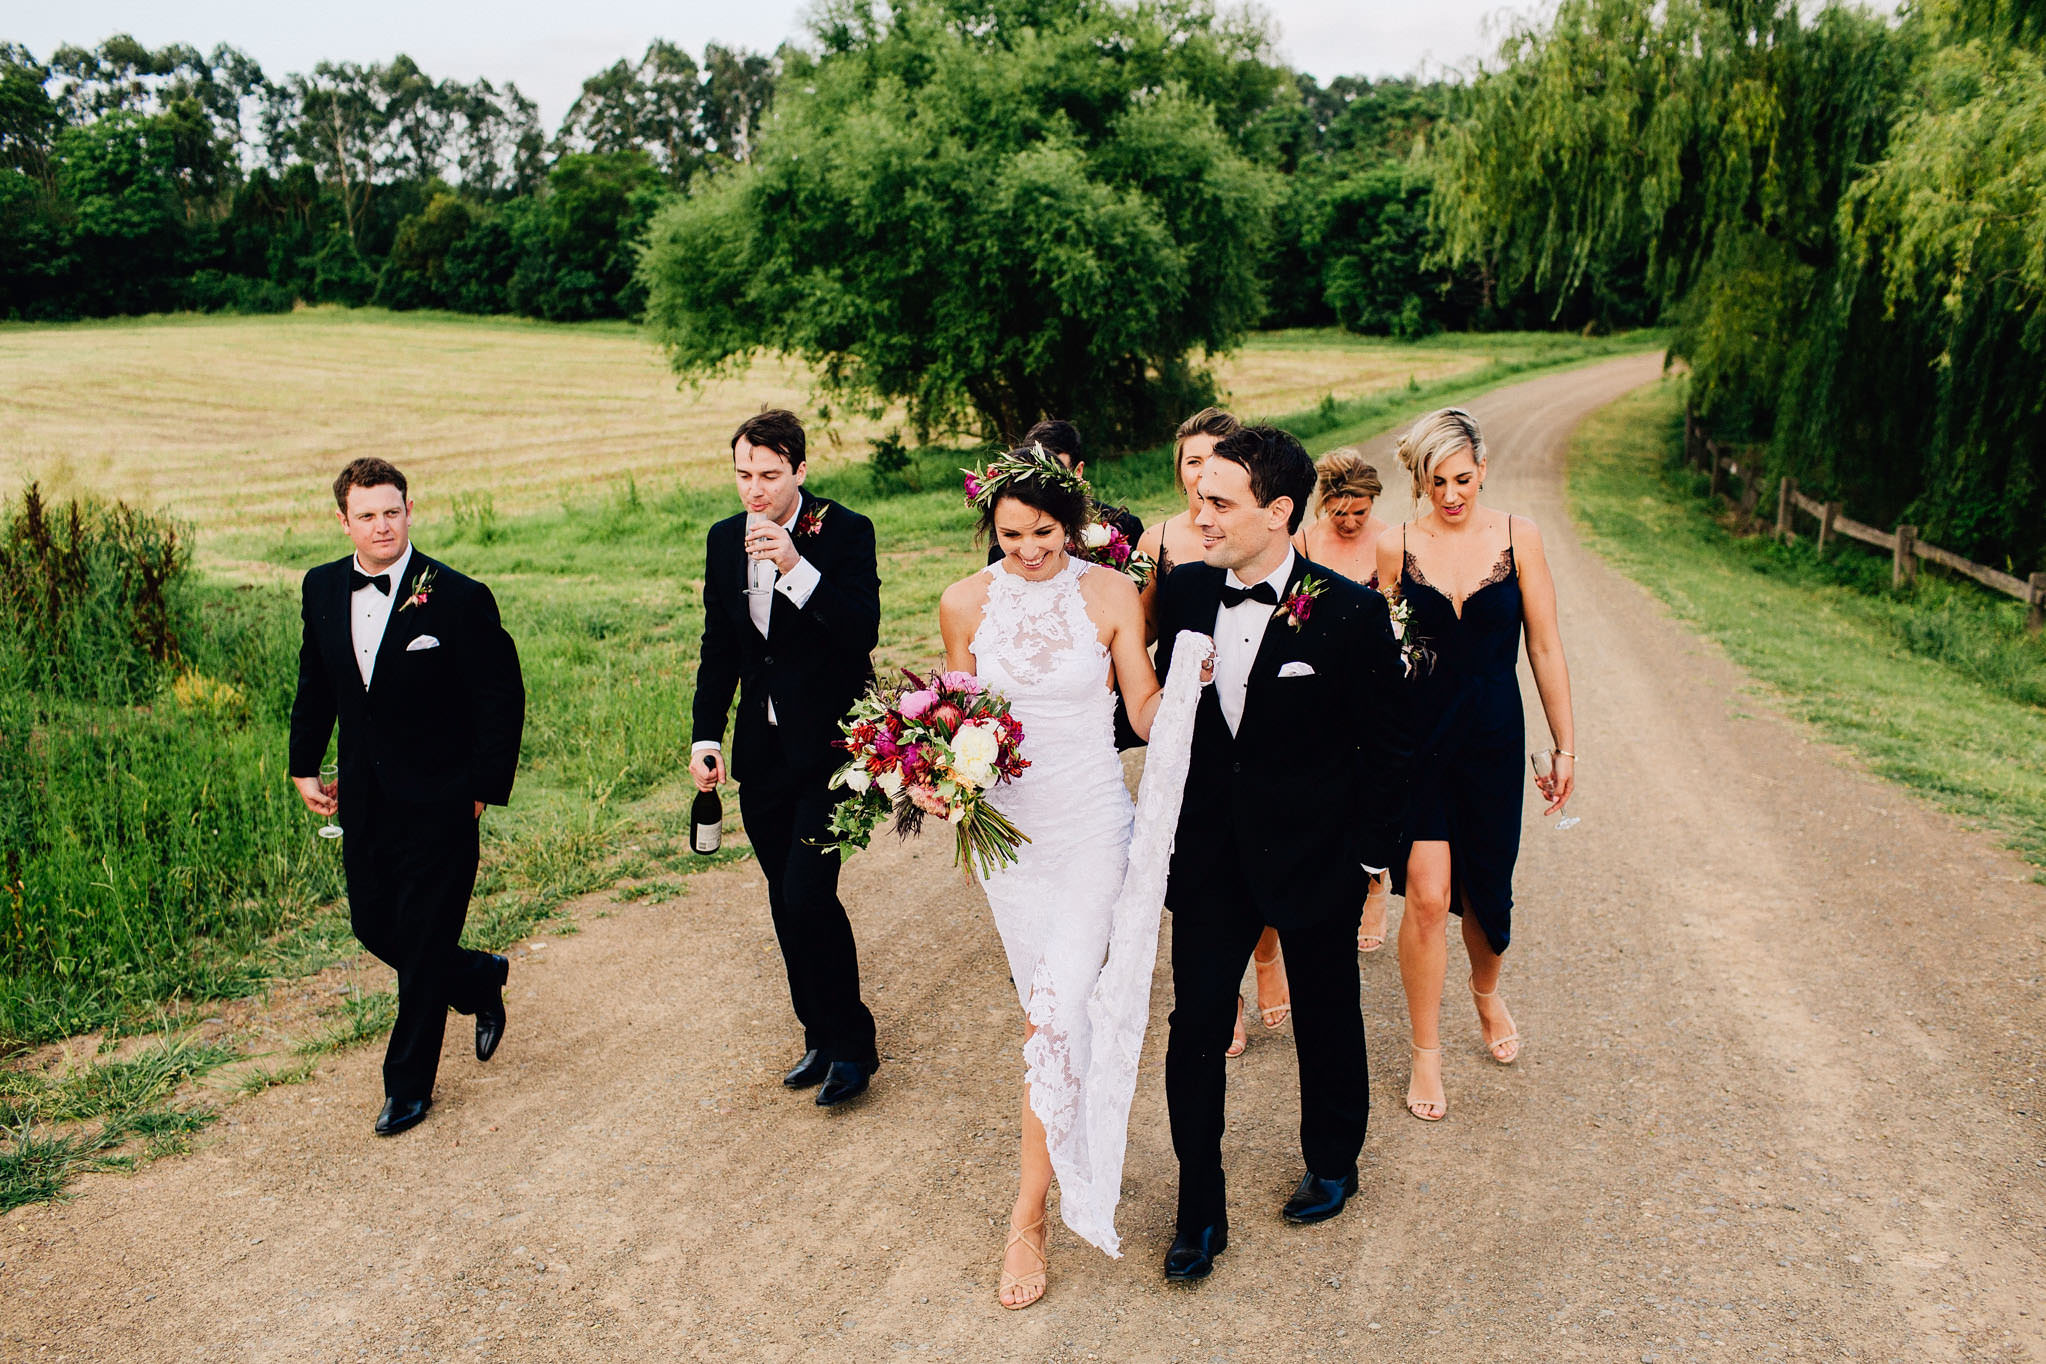 TocalHomestead_WeddingPhotography_LaurenAnnePhotography-1123.jpg